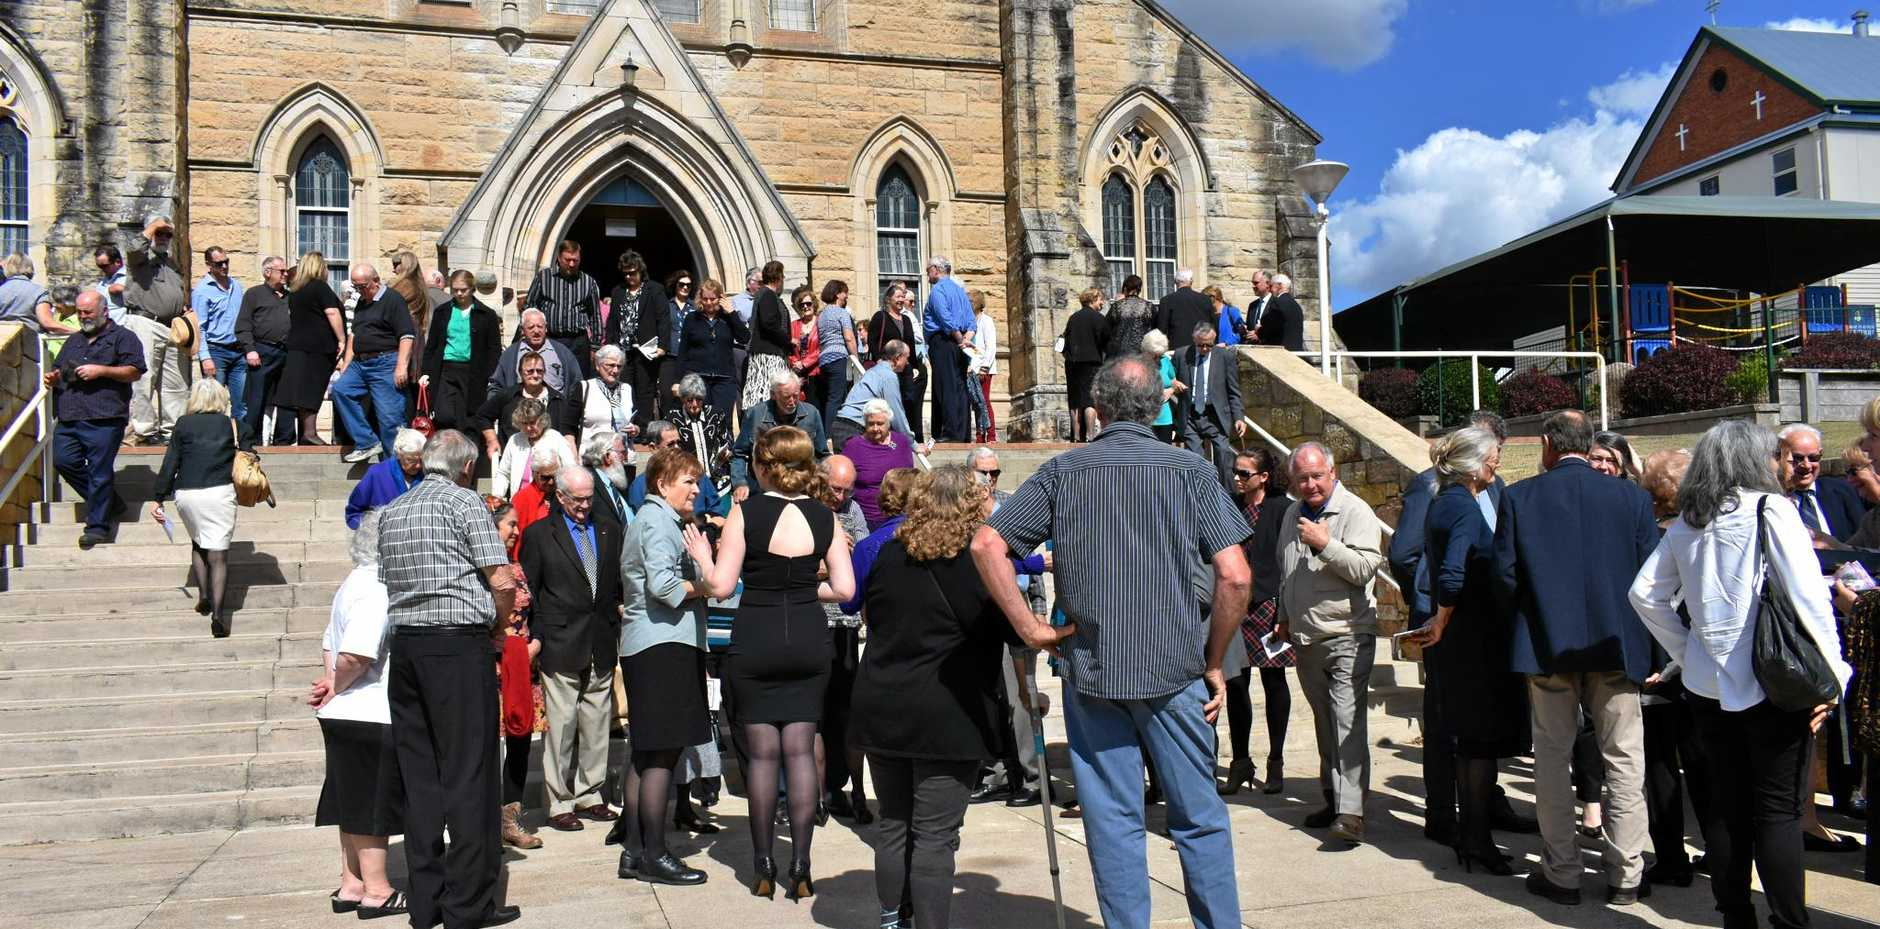 FAREWELL: About 200 people said their last good-byes to local government icon Kev de Vere at a simple and moving funeral at St Patrick's church.